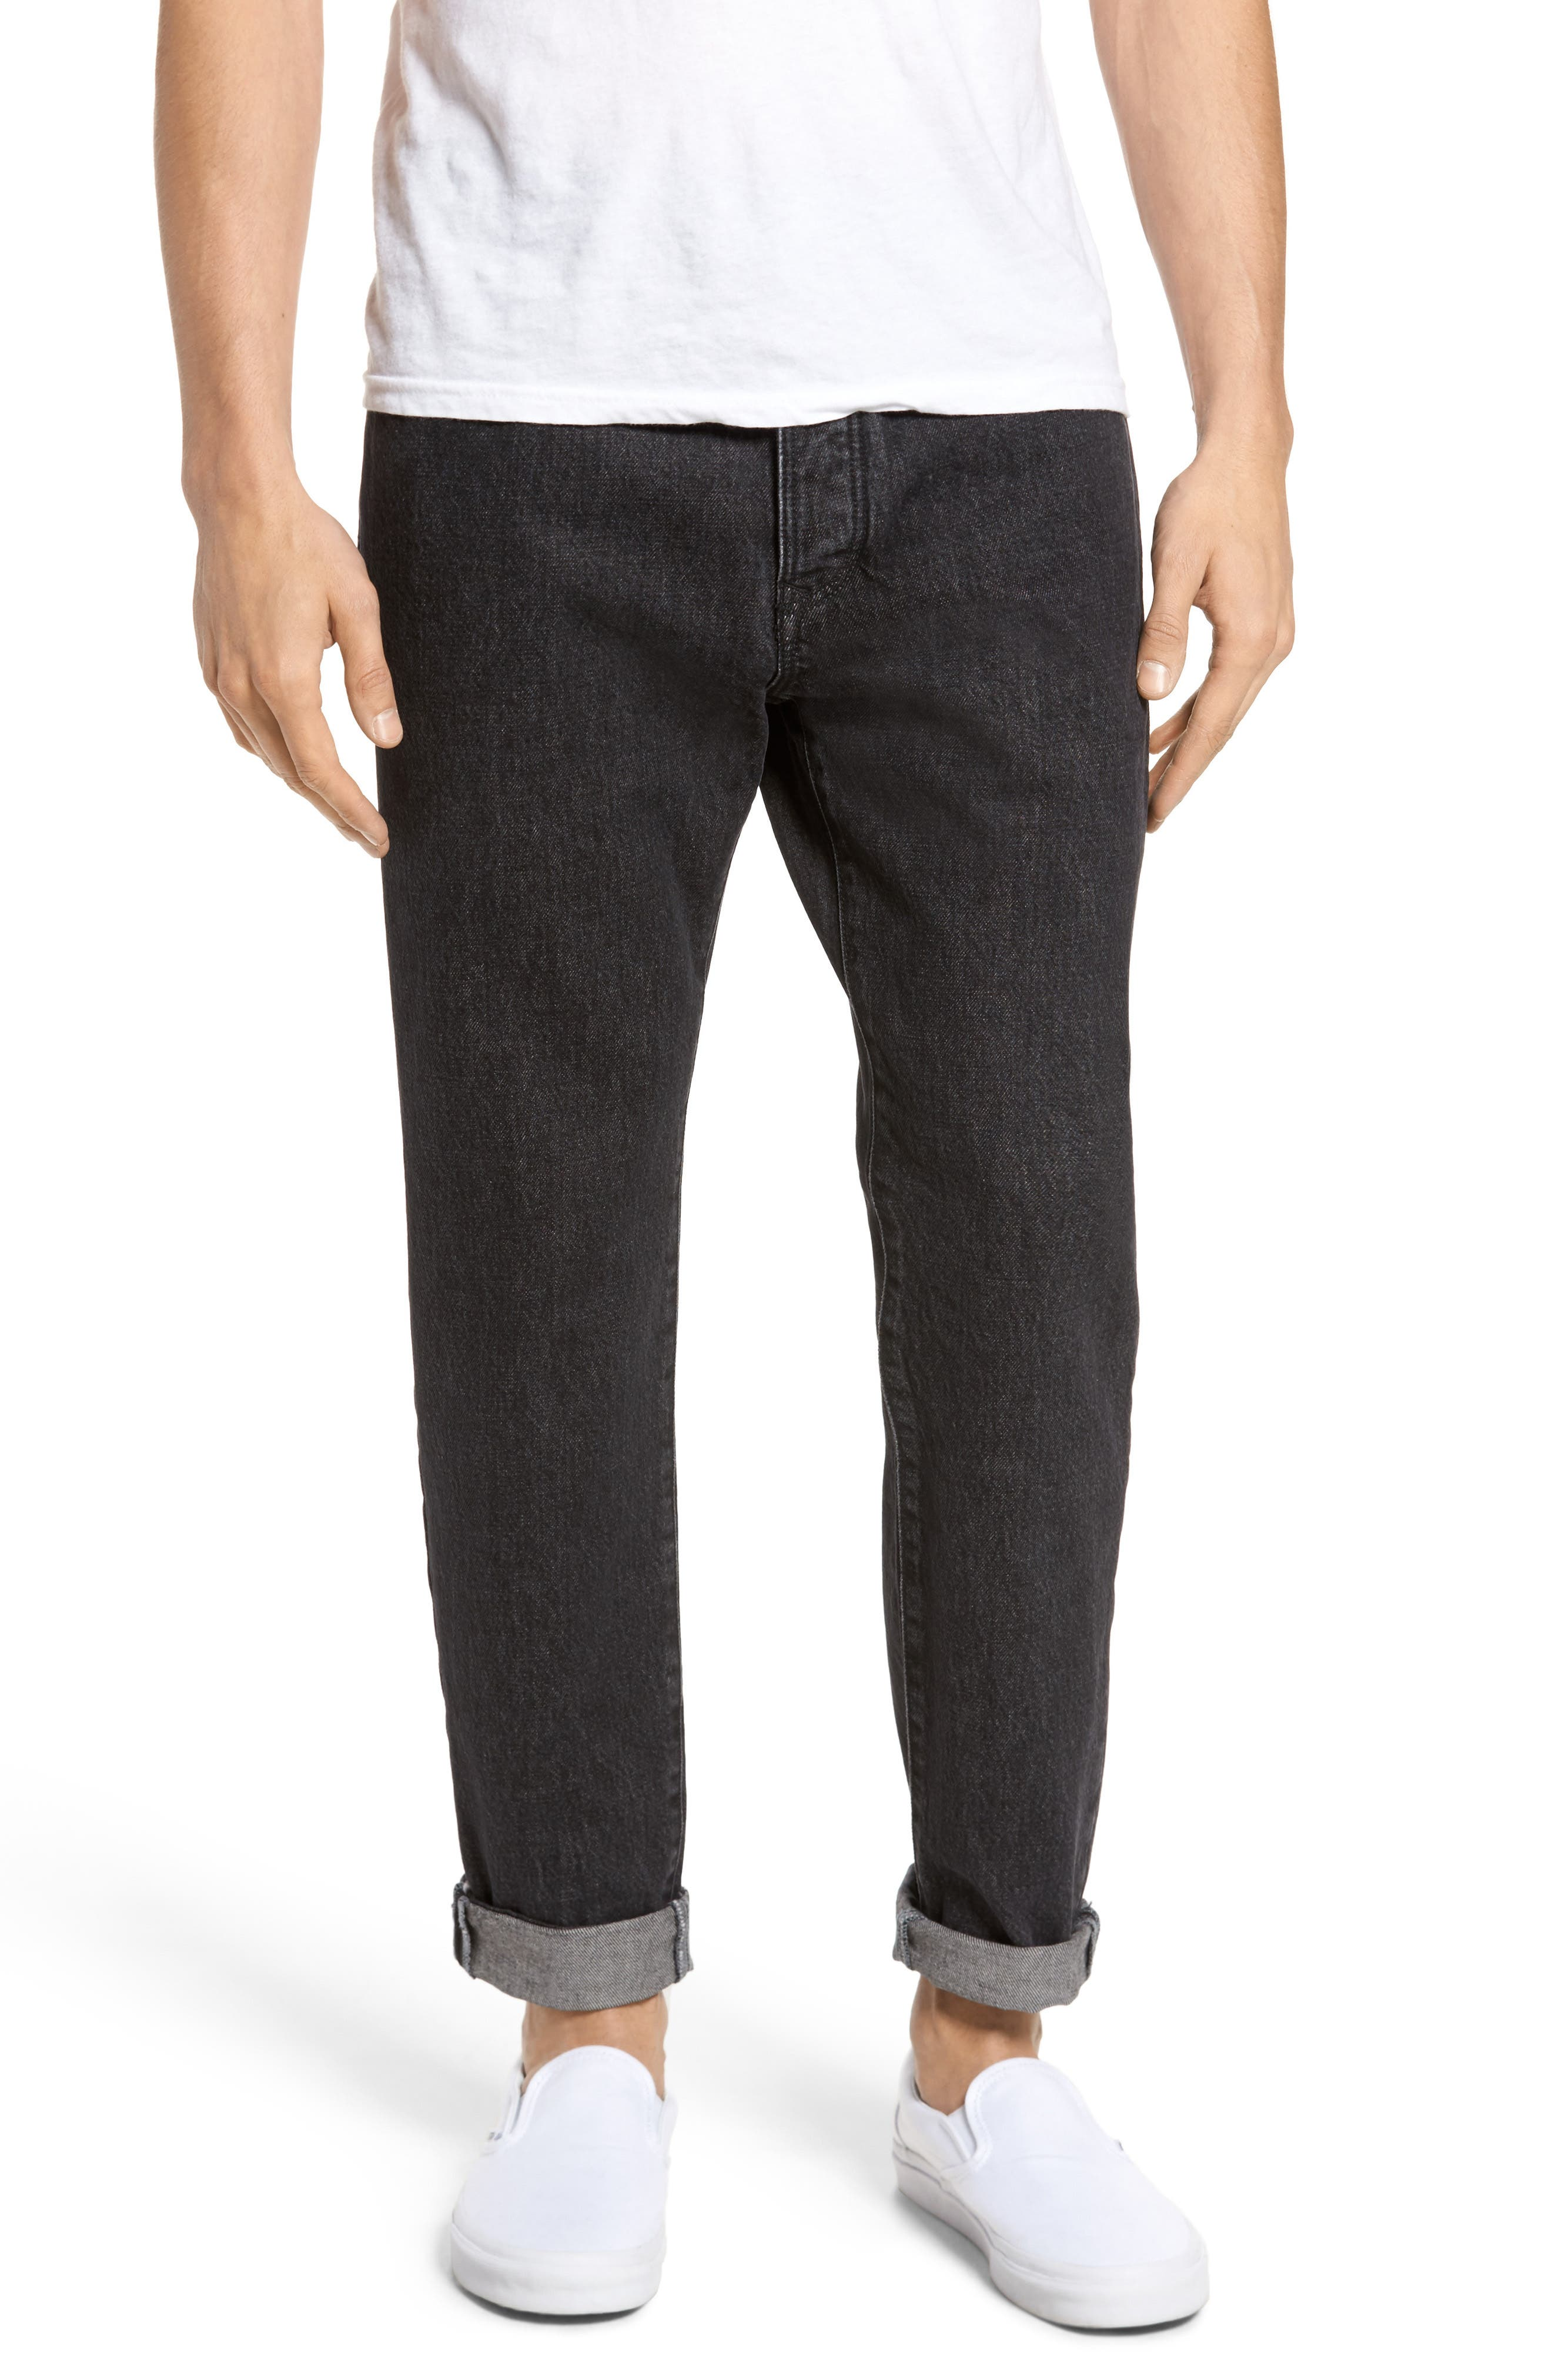 Alternate Image 1 Selected - Tommy Hilfiger 90s Classic Straight Leg Jeans (Black)